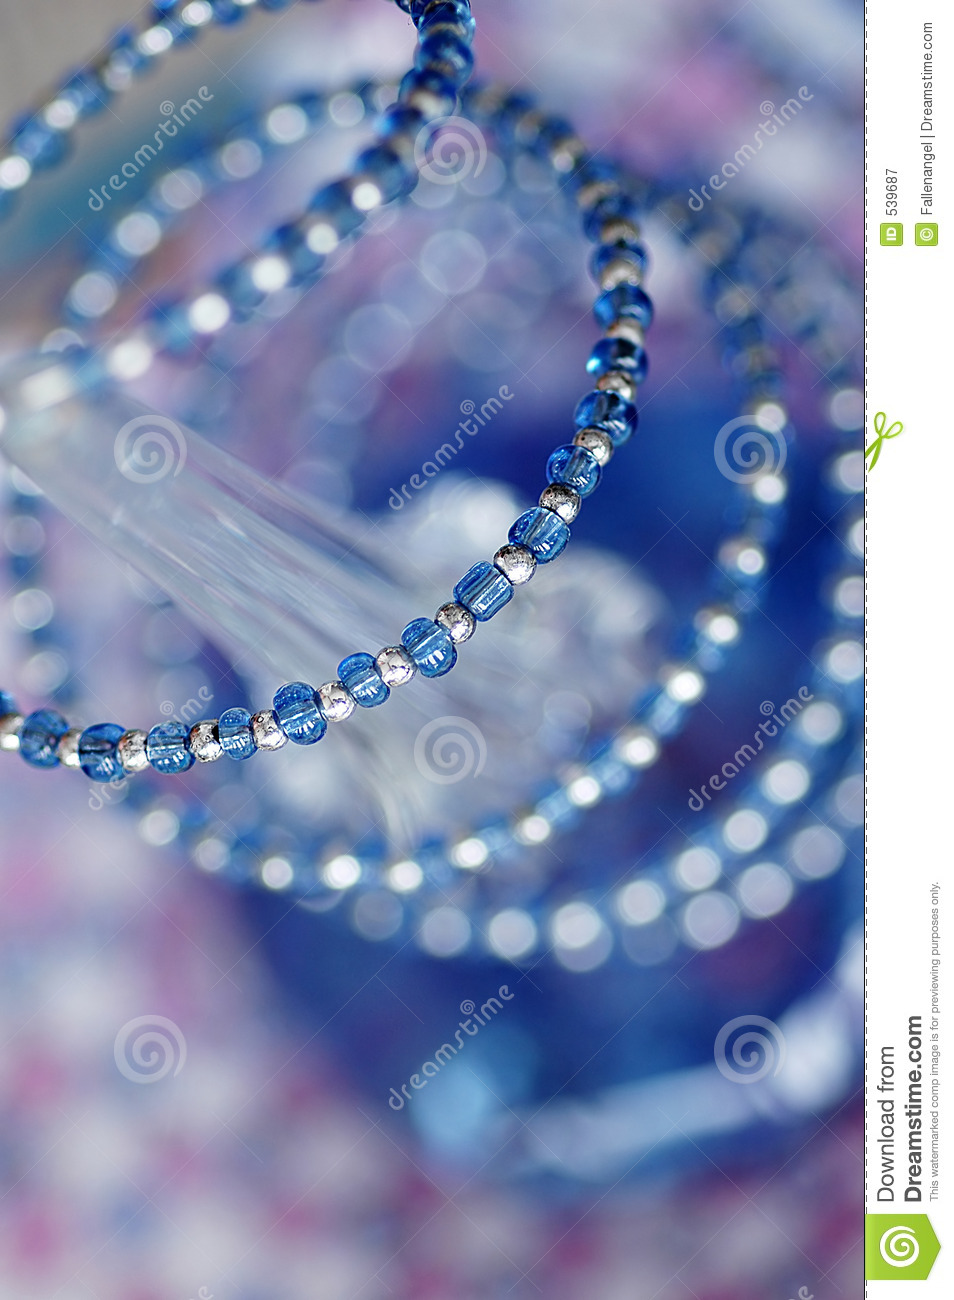 abstract jewel picture beautiful-#30